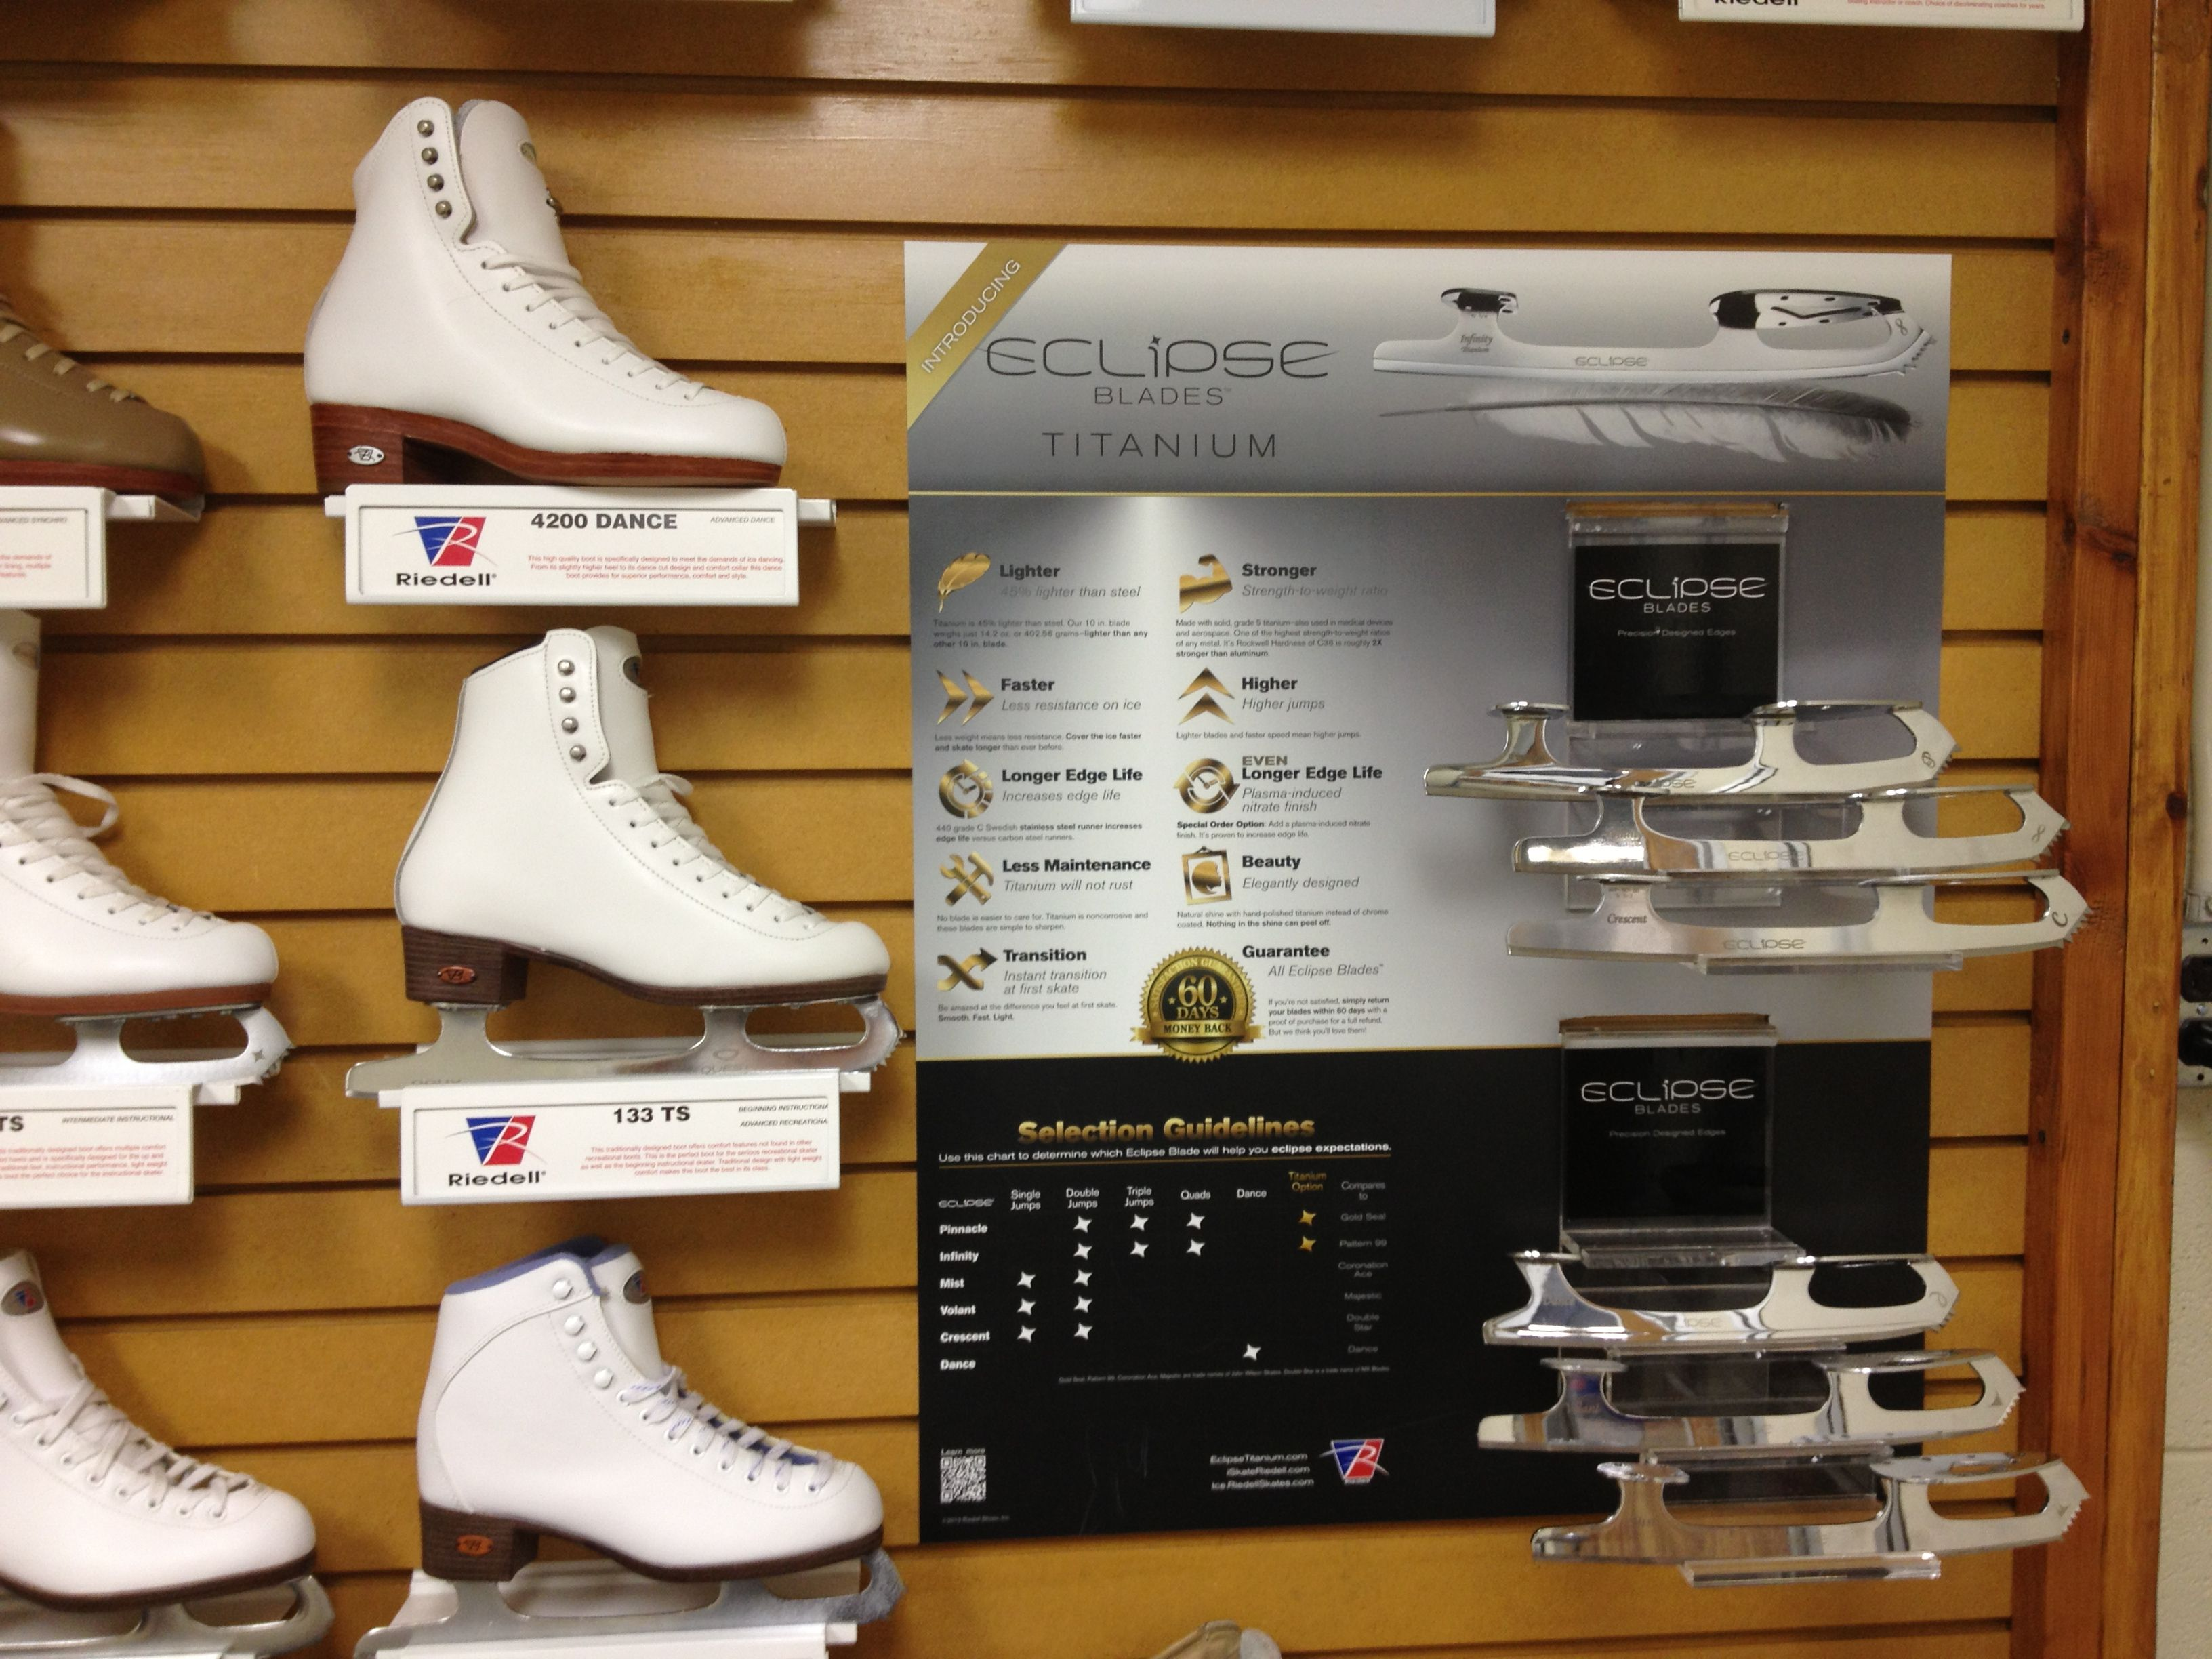 Find Our Eclipse Titanium Blades Wall Display At Select Riedell Dealers Near You Figureskating Riedell Ice Skates Skate Ice Skating